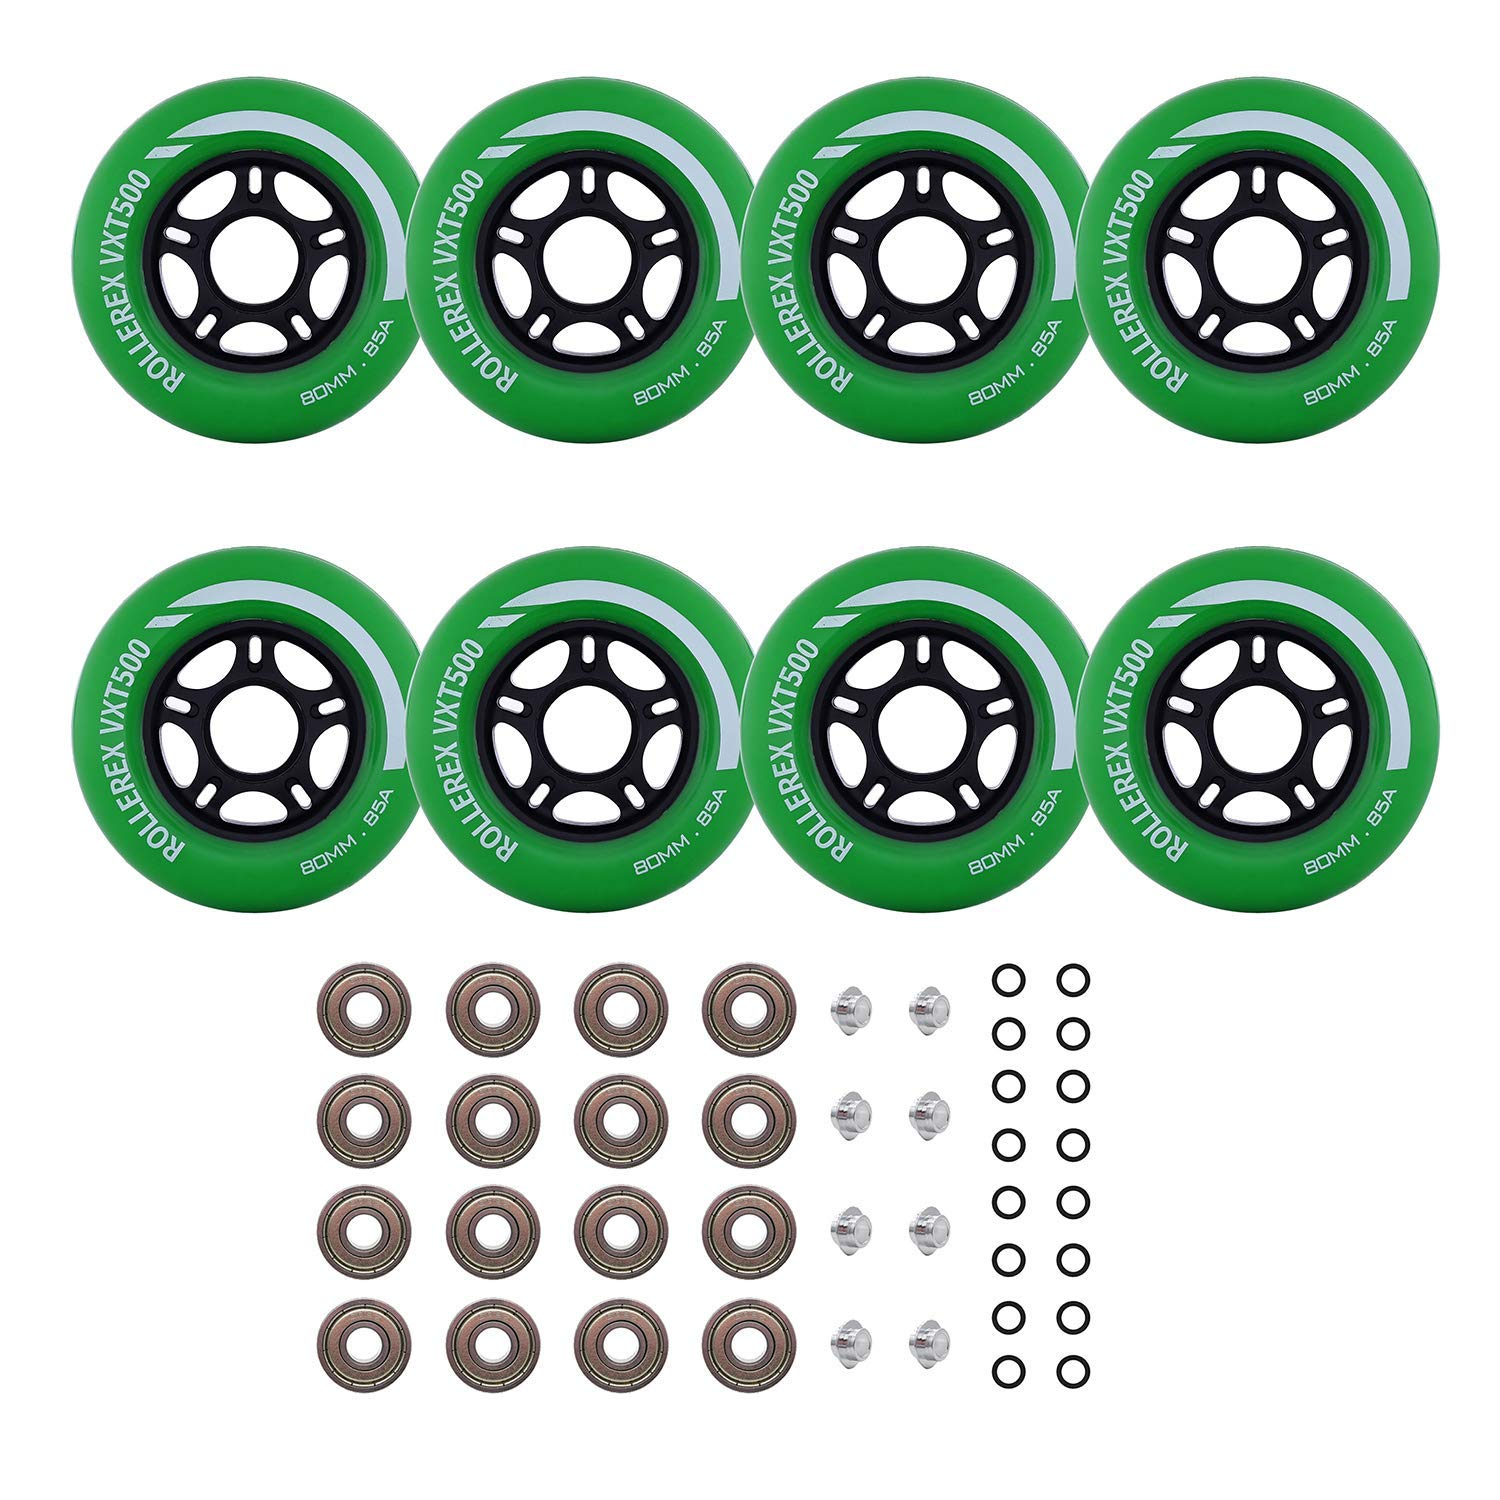 Rollerex Inline Skate Wheels VXT500 80mm (8-Pack or 2-Pack or 2 Wheels w/Bearings, Spacers and Washers) (80mm Turf Green (8 Wheels w/Bearings, spacers and washers)) by Rollerex